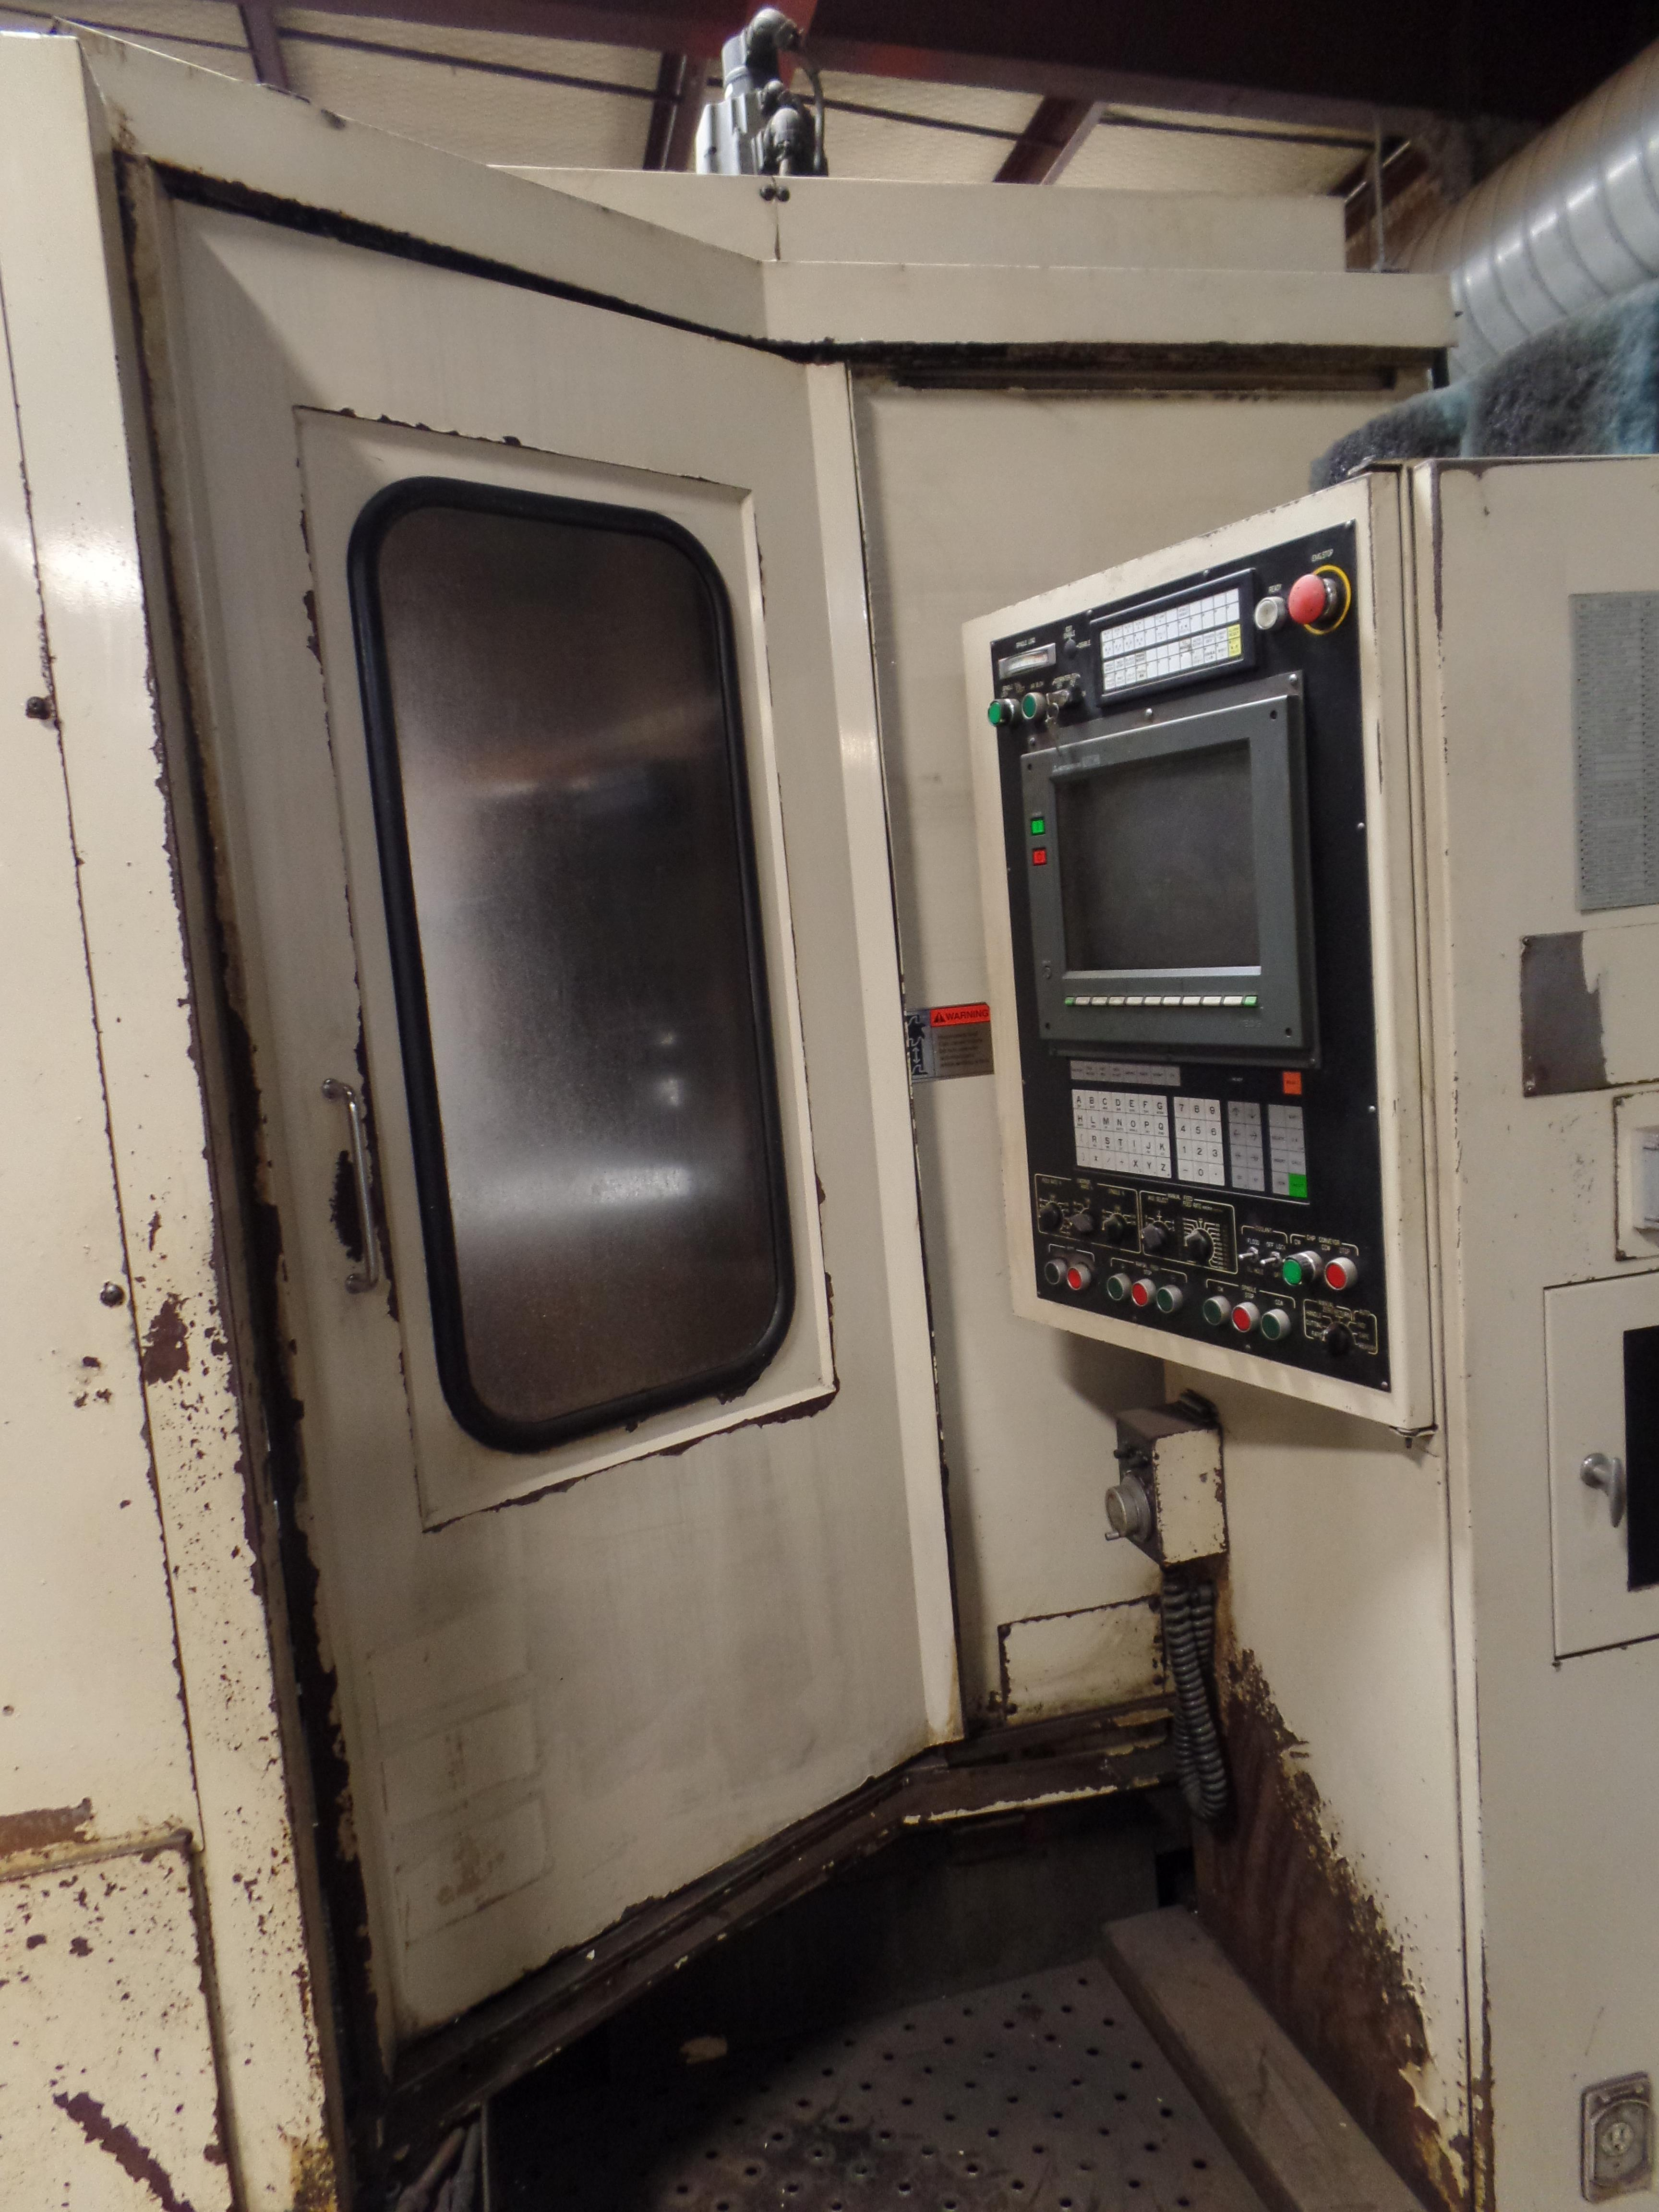 "1992 Mitsubishi M-H50C, 300 control, Meldas.19.7""pallets 28.4""x24.8""x28.4"" travels, 4000 rpm, - Image 5 of 9"